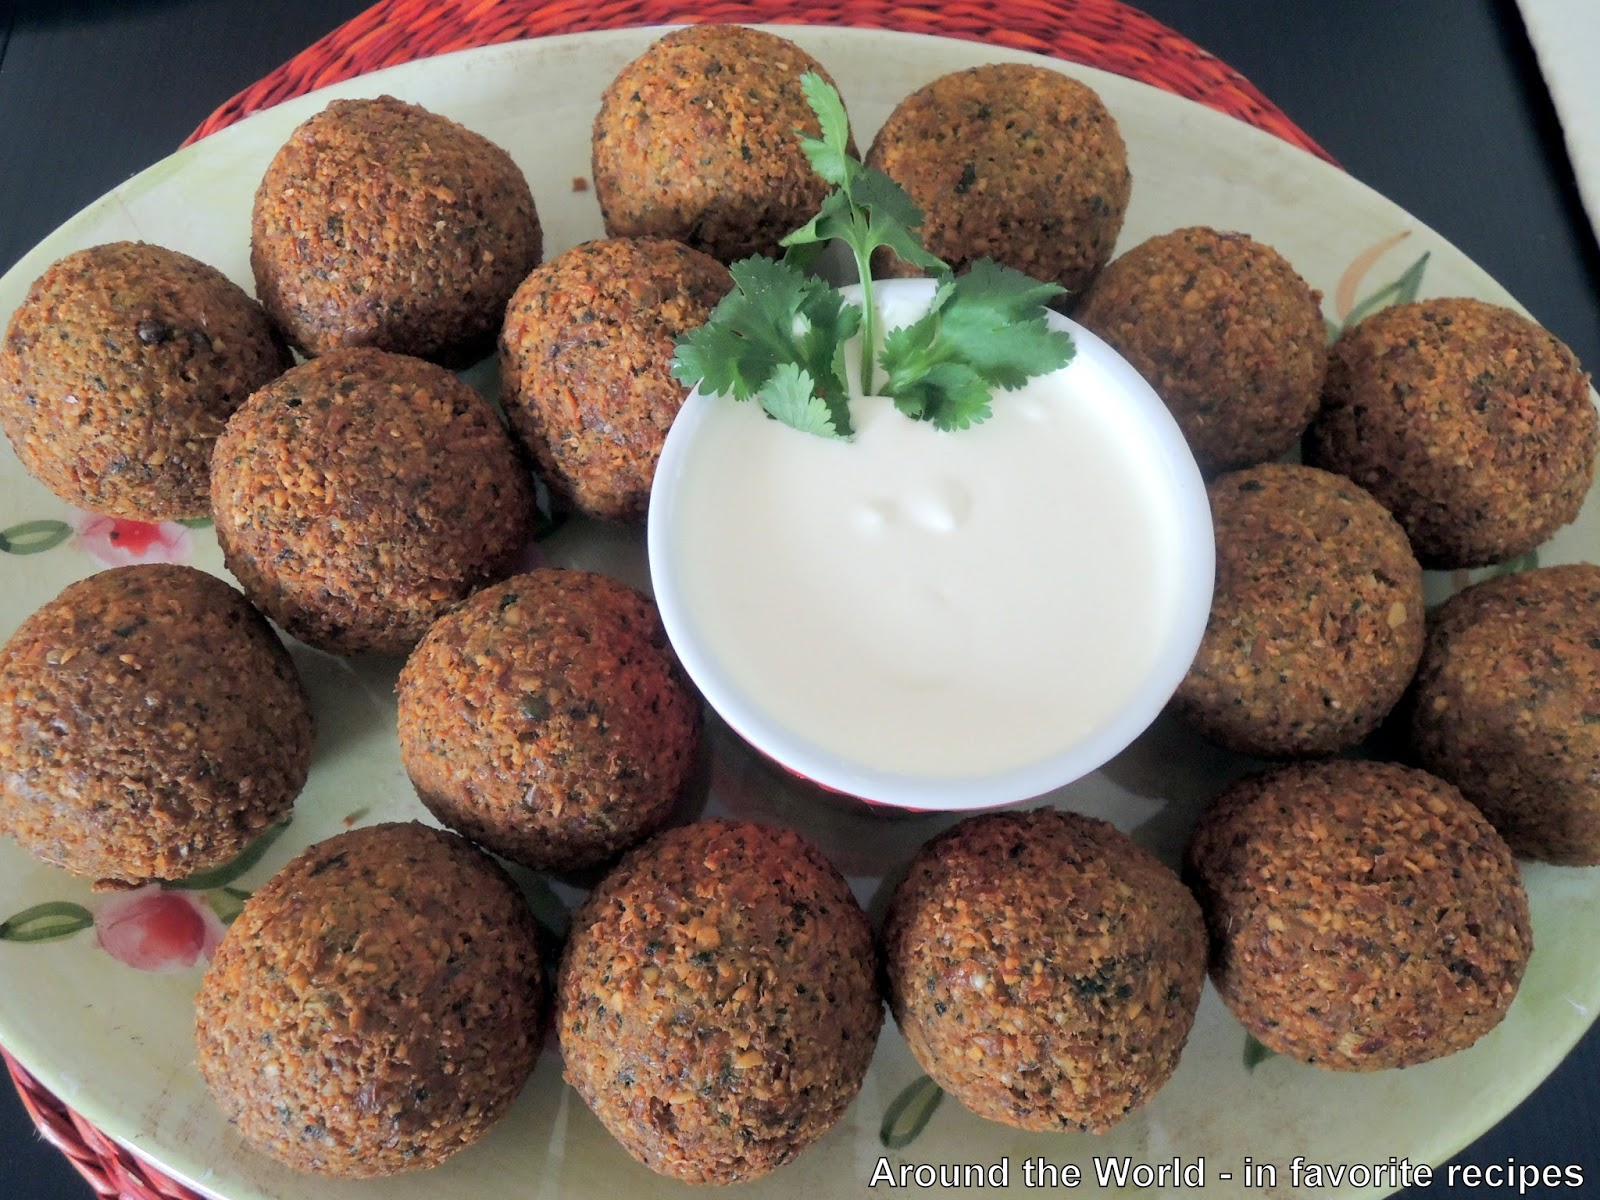 Around the World - in favorite recipes: Falafel